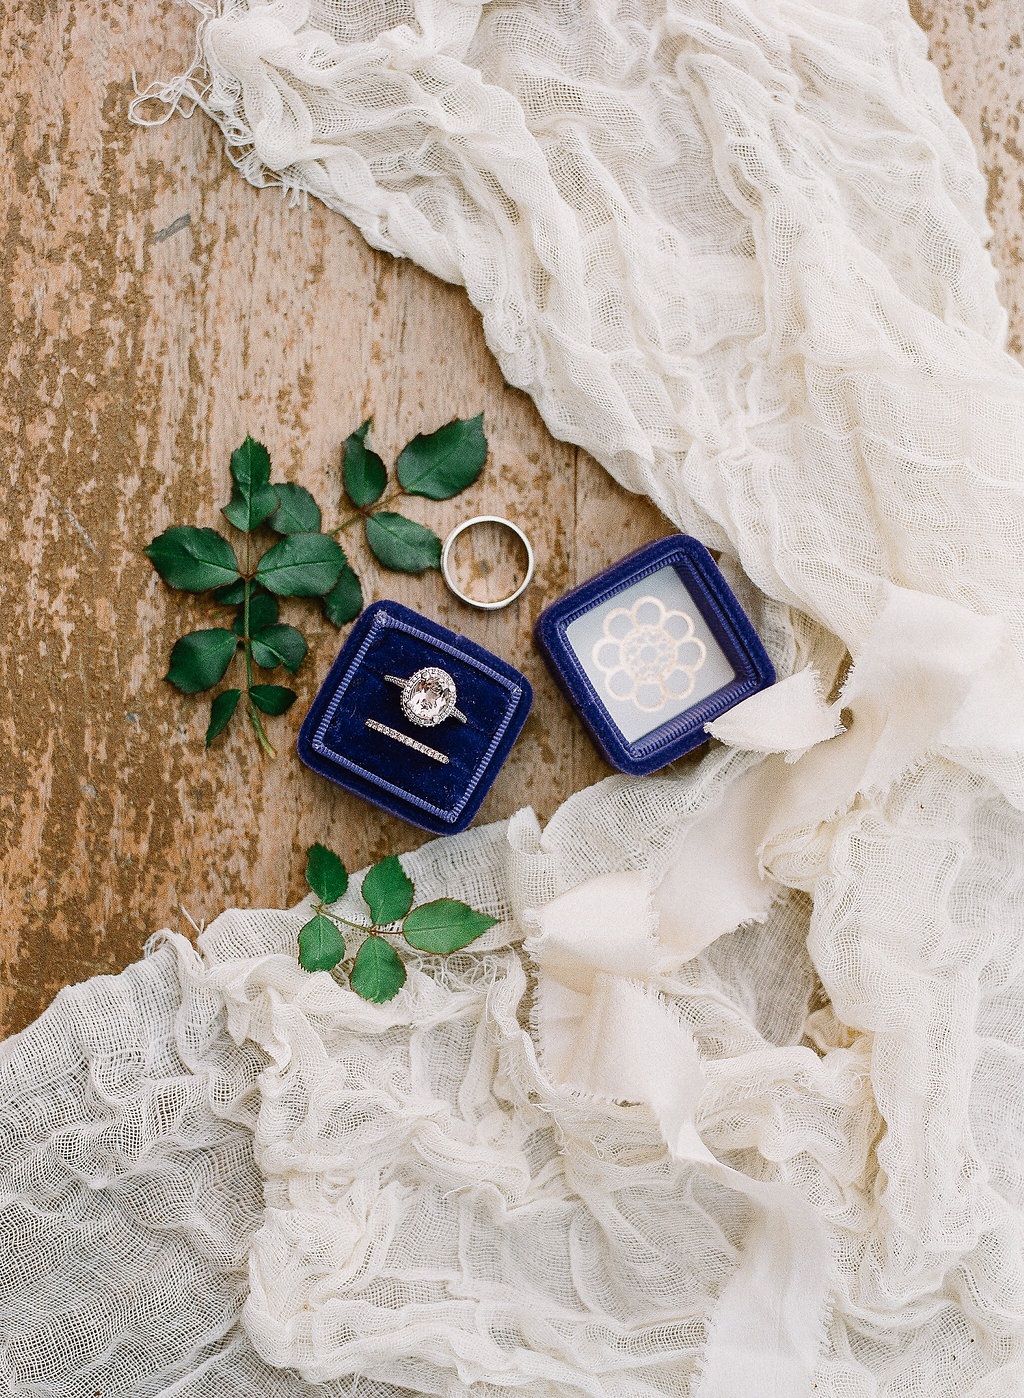 Velvet blue wedding ring detail photo | Fallbrook Treehouse | Compass Floral | Wedding Florist in San Diego and Southern California | Allie Lindsey Photography